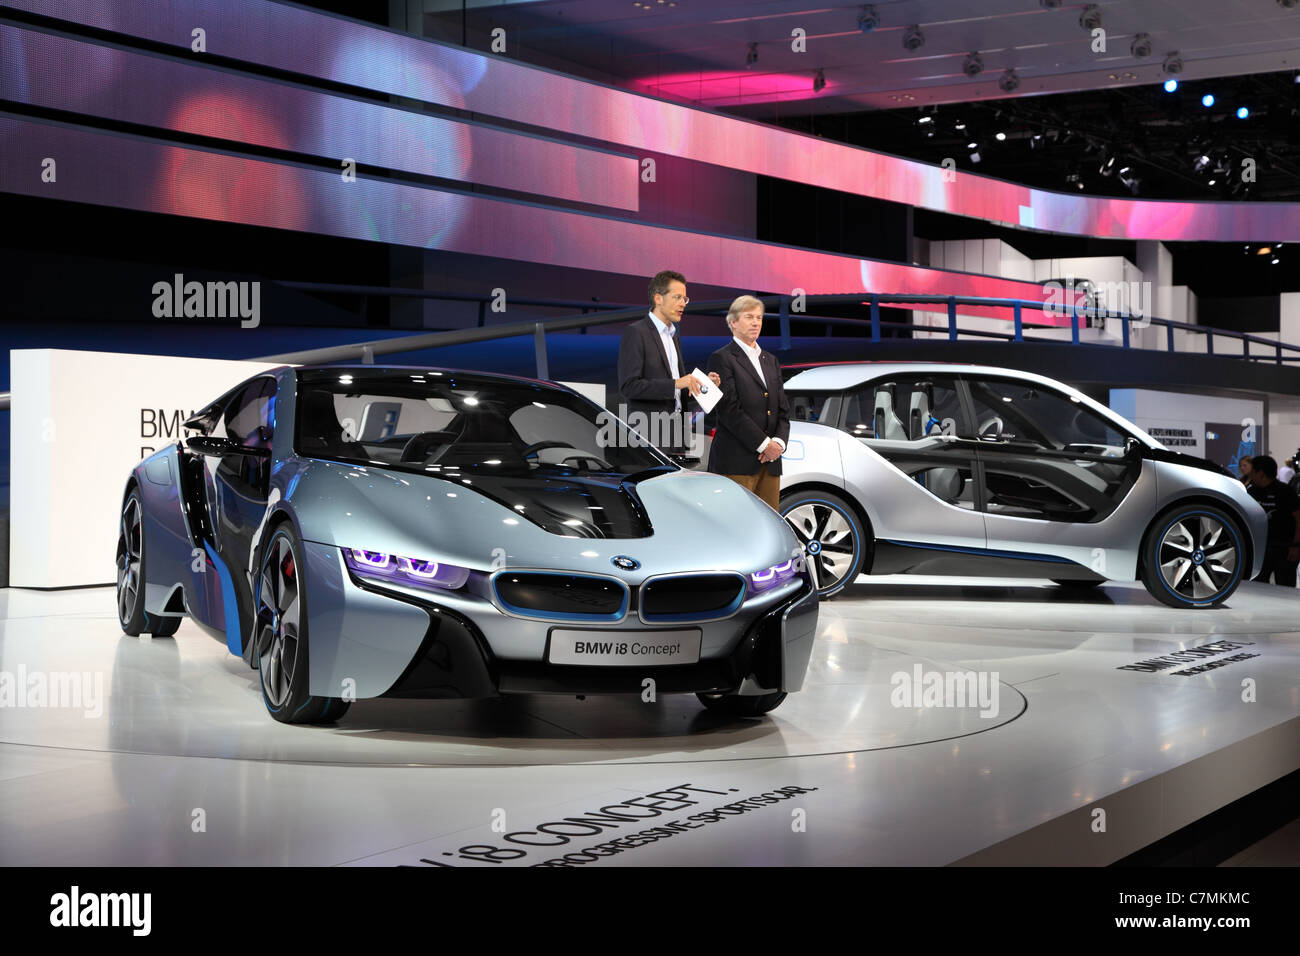 BMW Electric Concept Cars I8 And I3 At The 64th IAA (Internationale  Automobil Ausstellung)